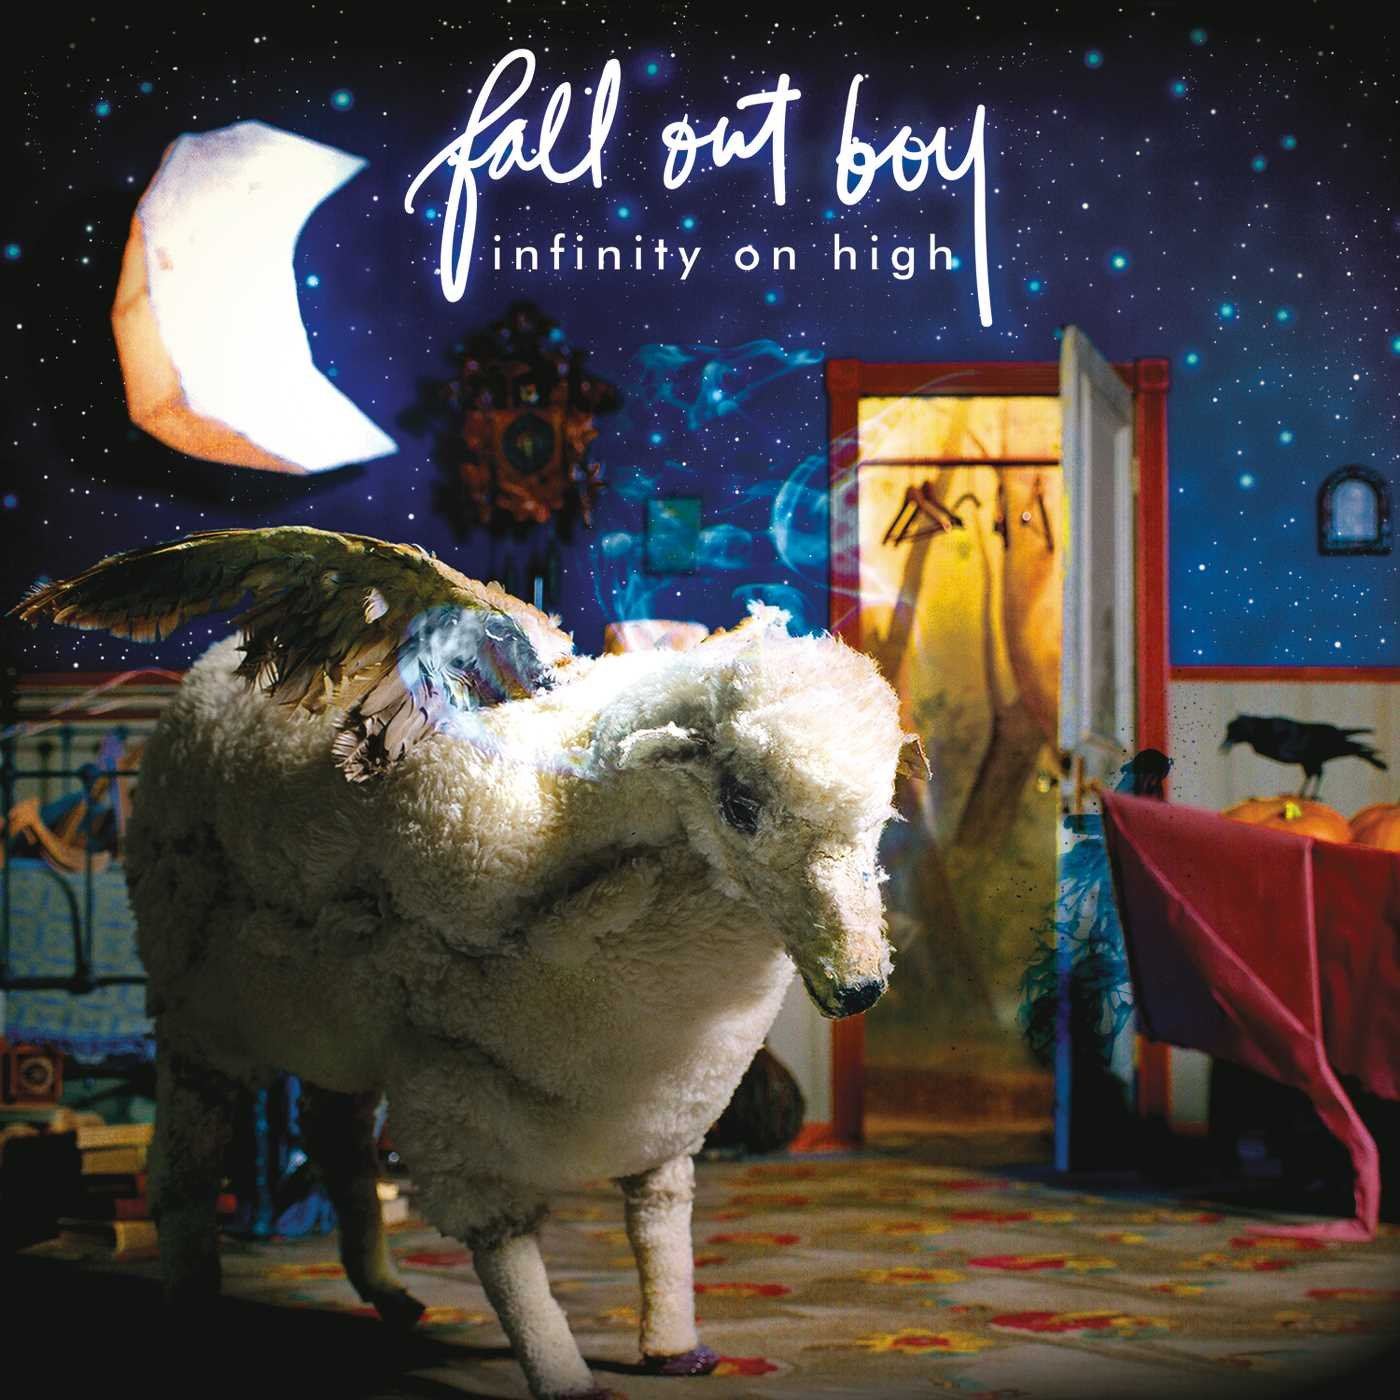 FALL OUT BOY - CD INFINITY ON HIGH